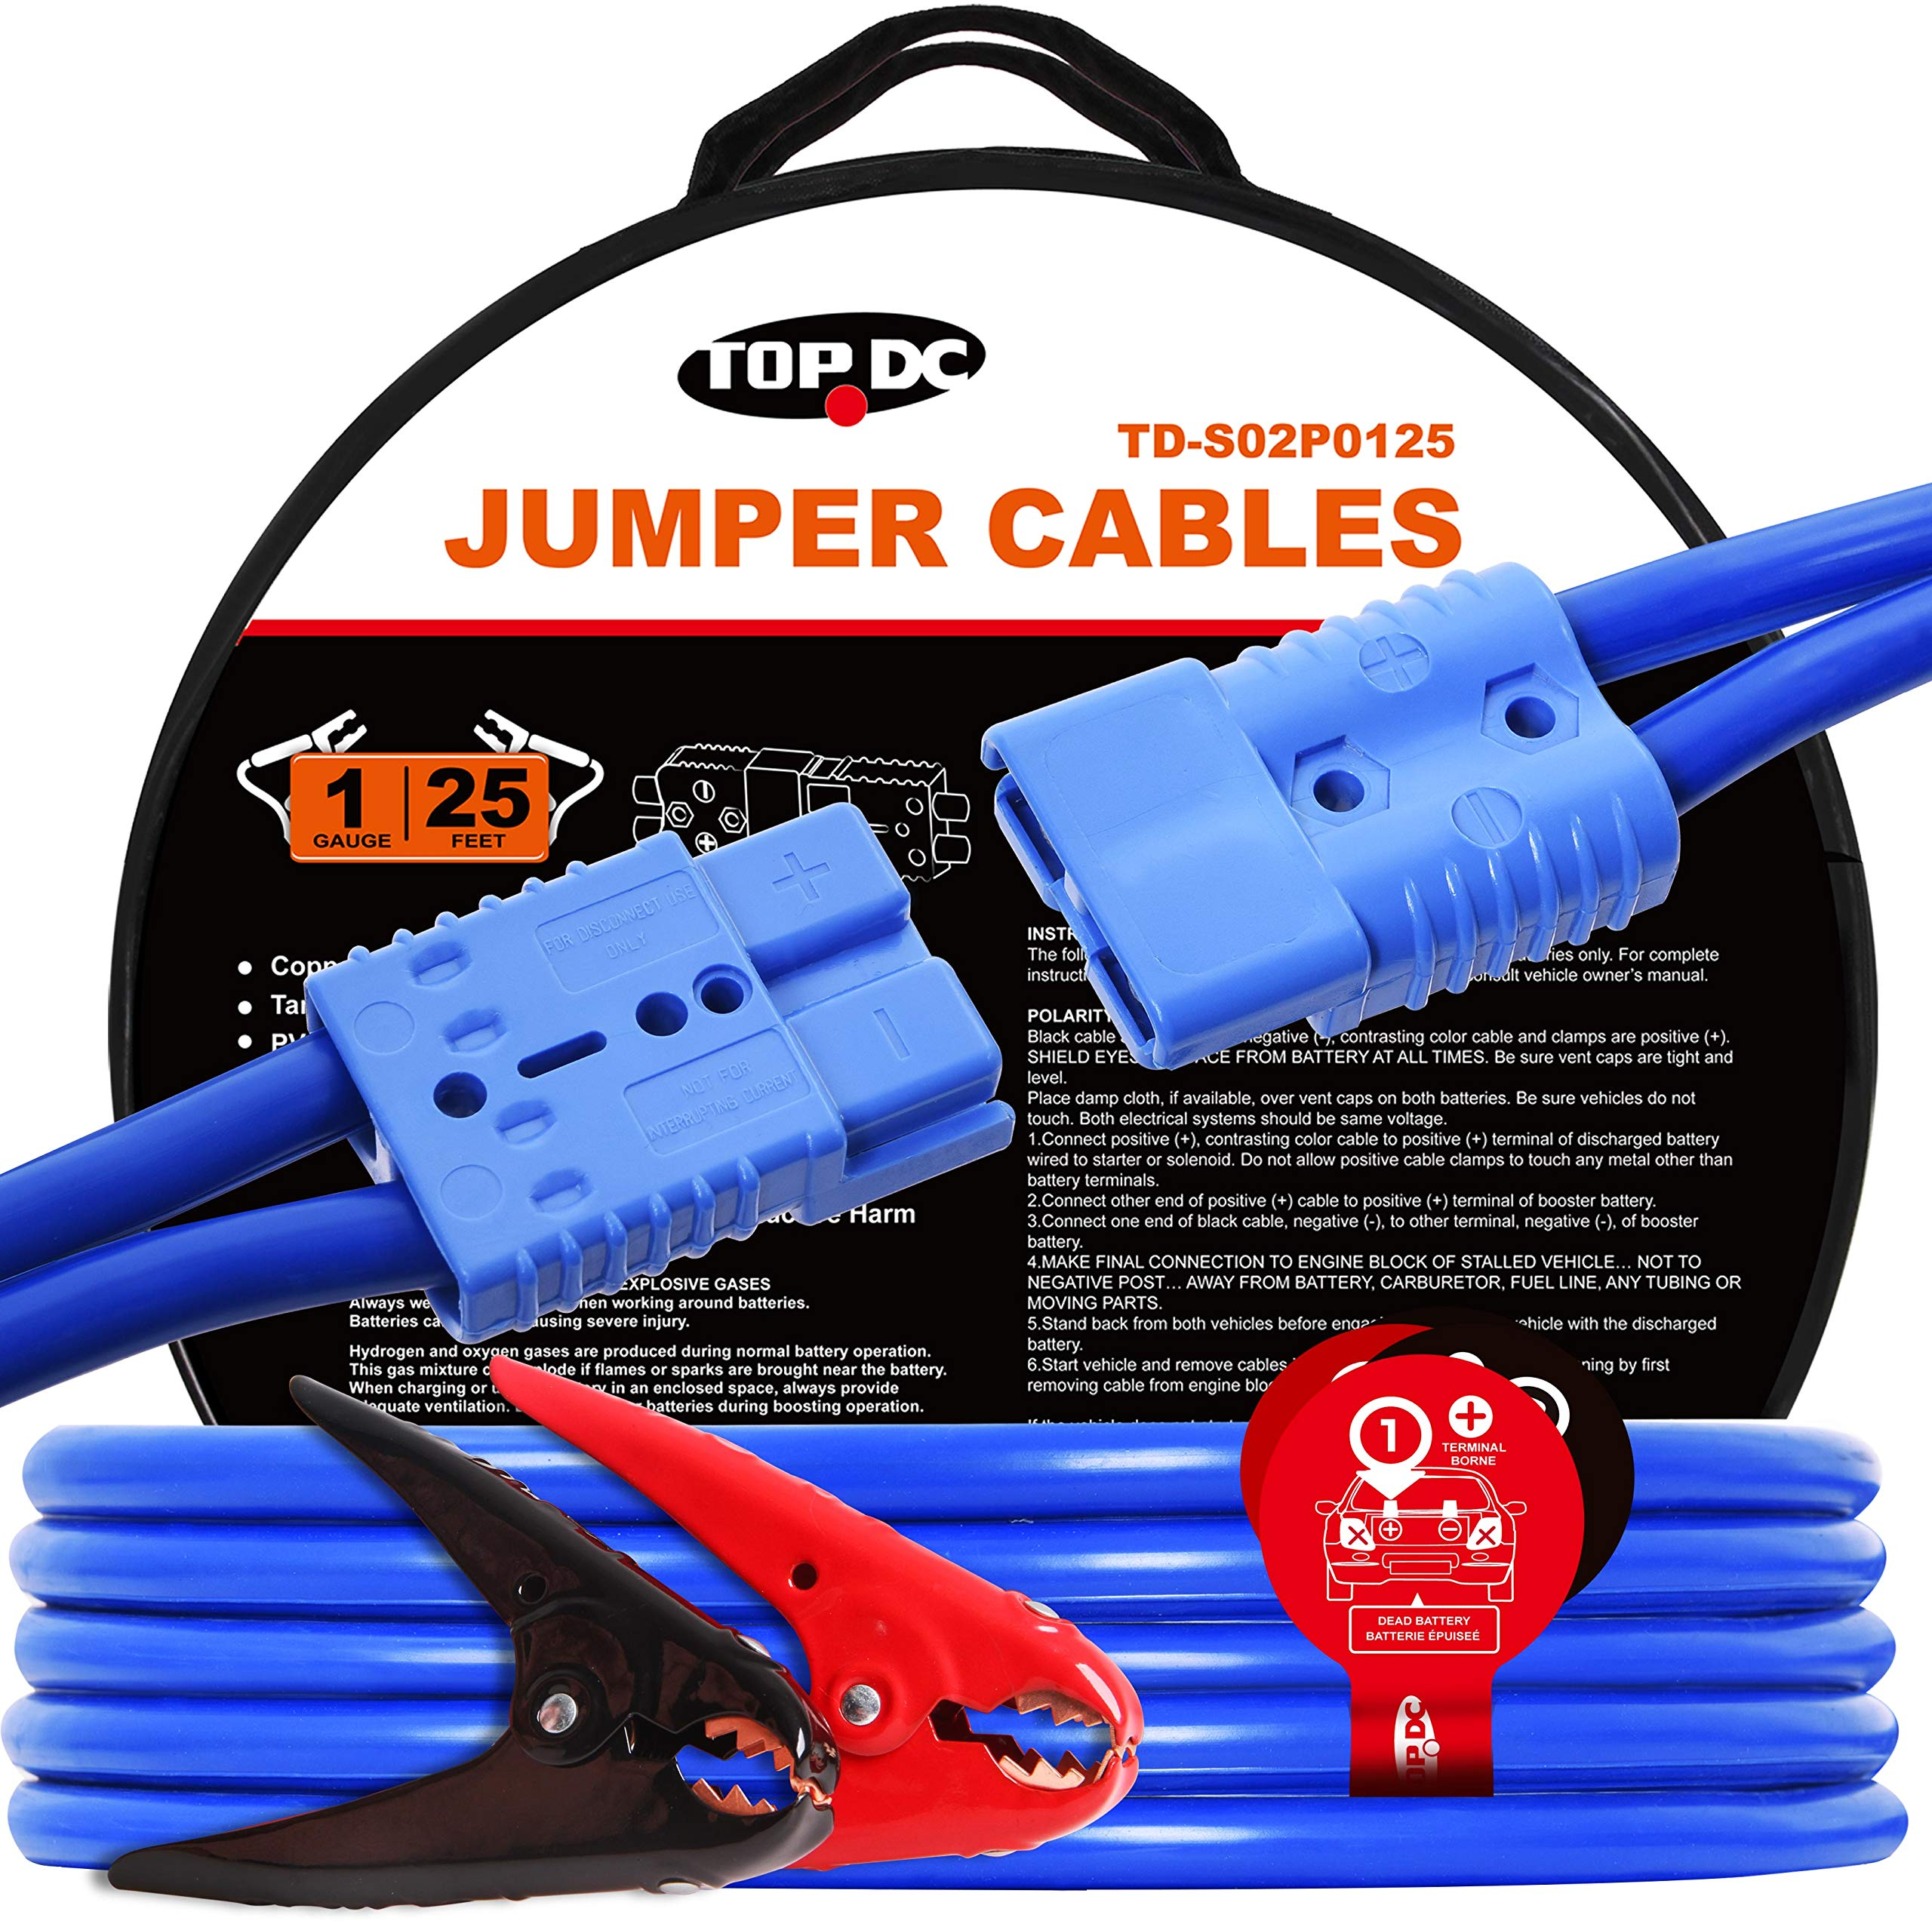 TOPDC Jumper Cables with Quick Connect Plug 1 Gauge 25 Feet 700Amp Heavy Duty Booster Cables (1AWG x 25Ft) by TOPDC